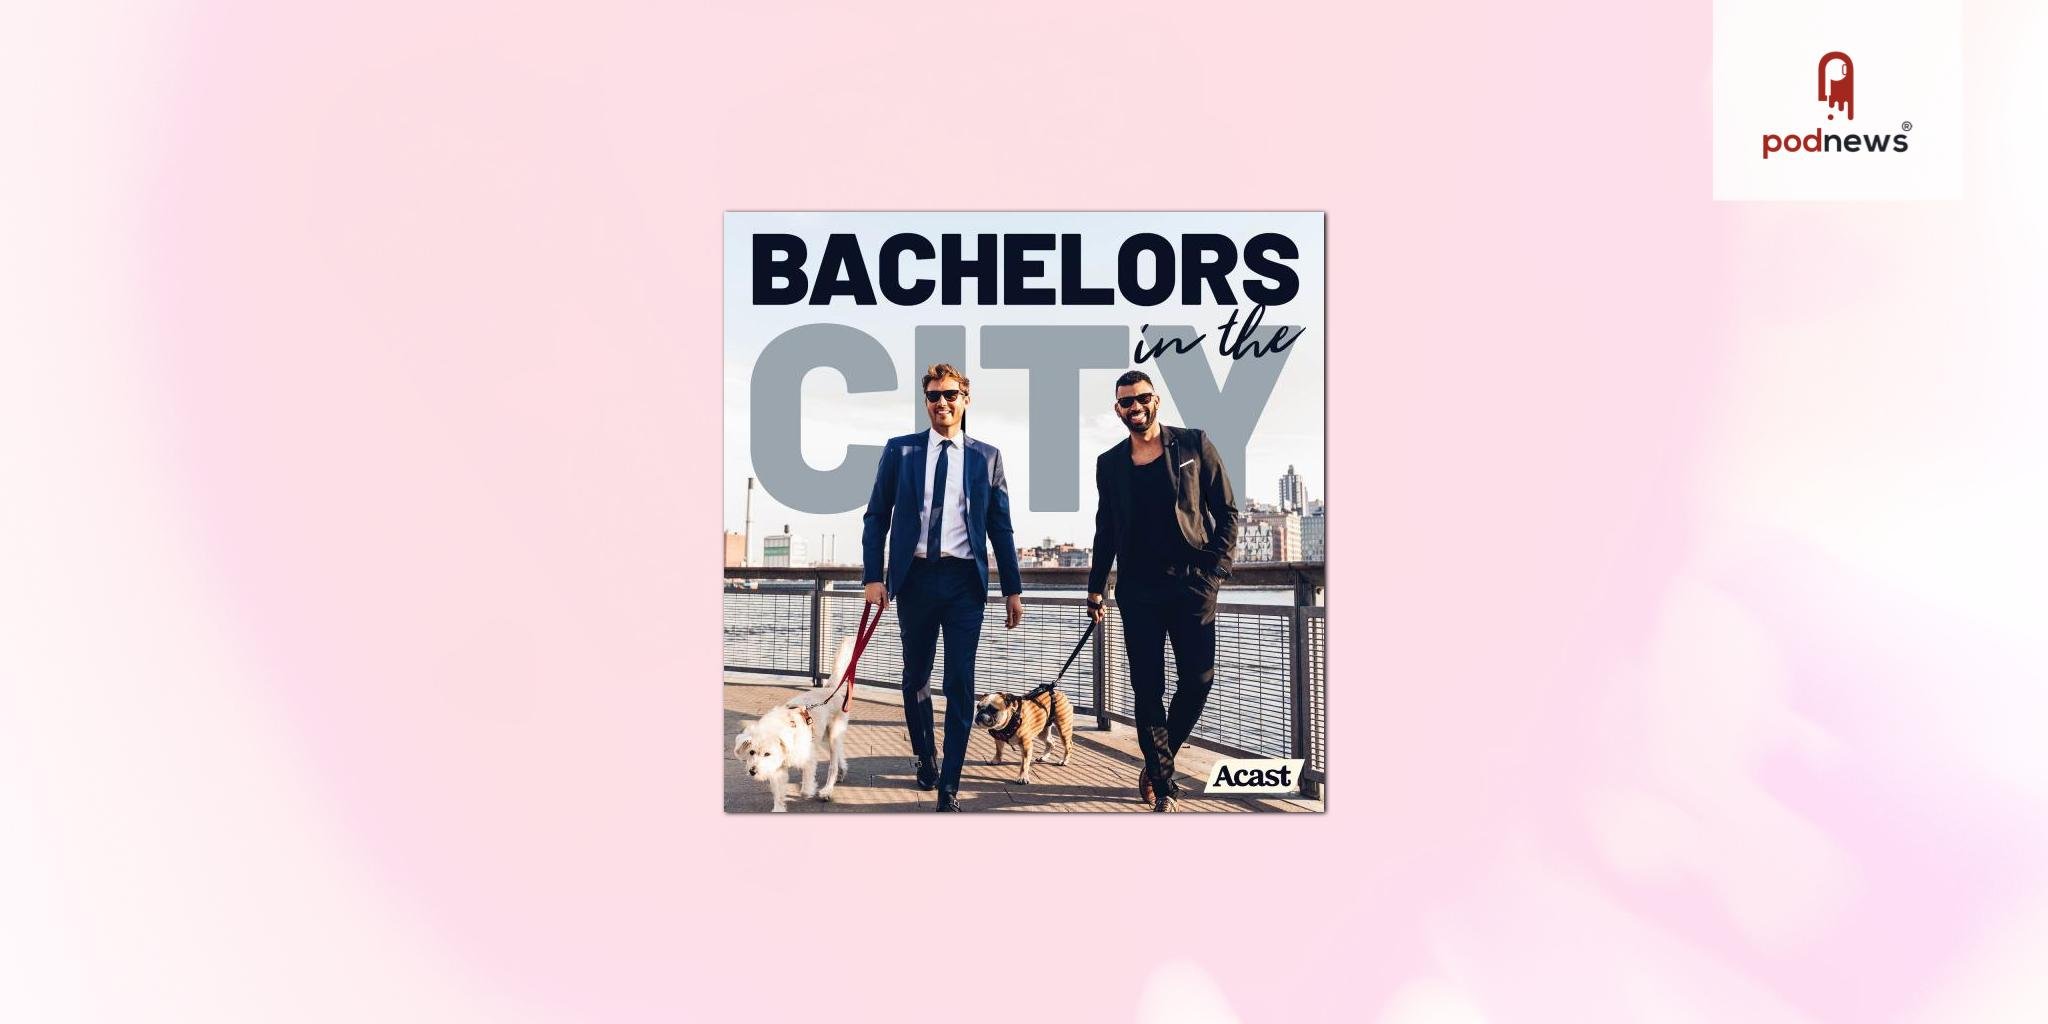 Peter Weber and Dustin Kendrick's Bachelors in the City podcast adopts Acast+